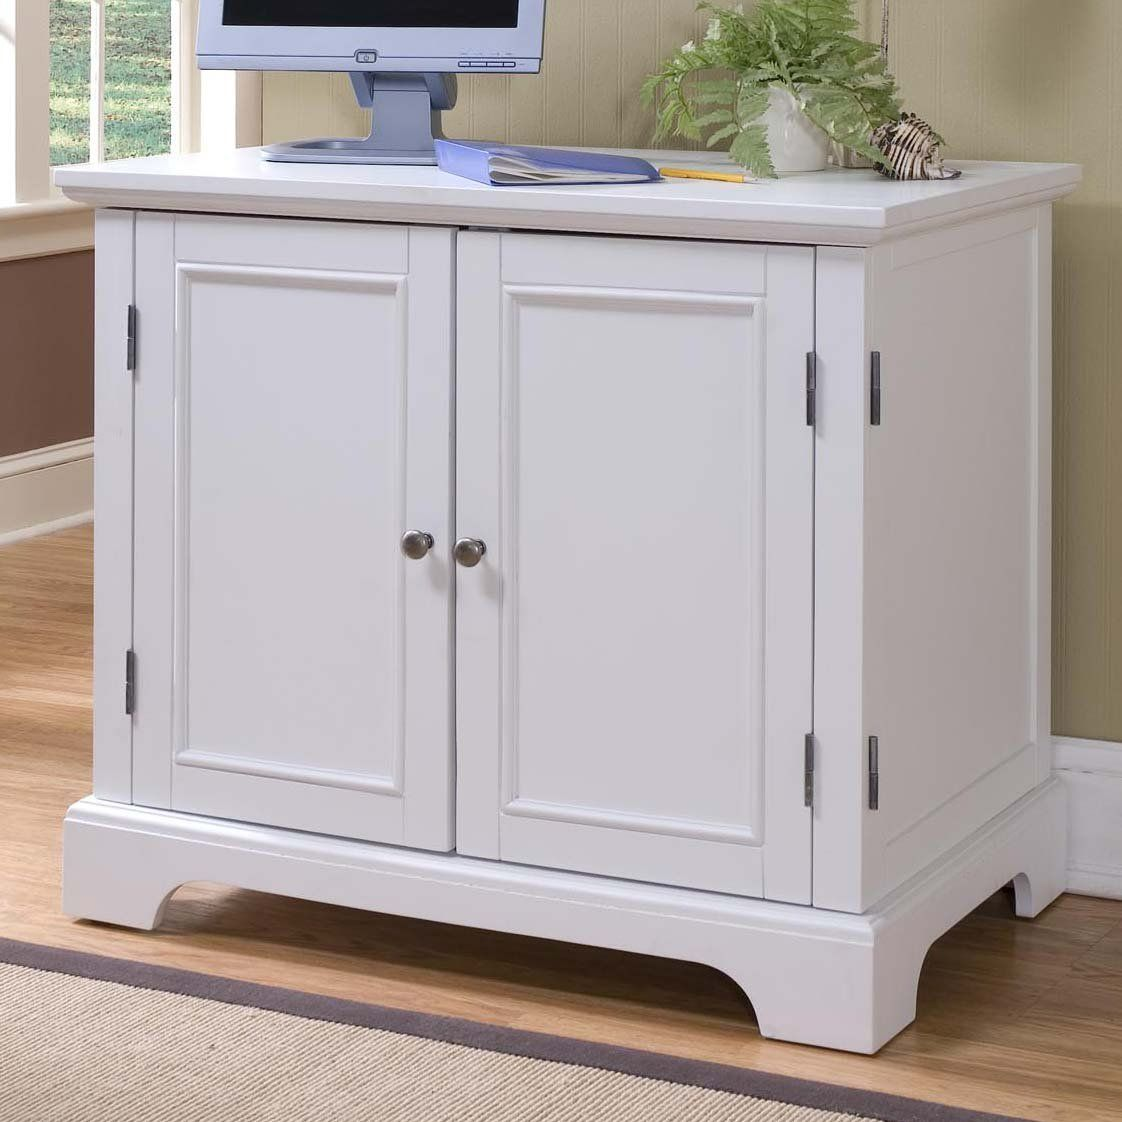 Shop Home Styles Naples Compact Computer Cabinet at ATG Stores ...